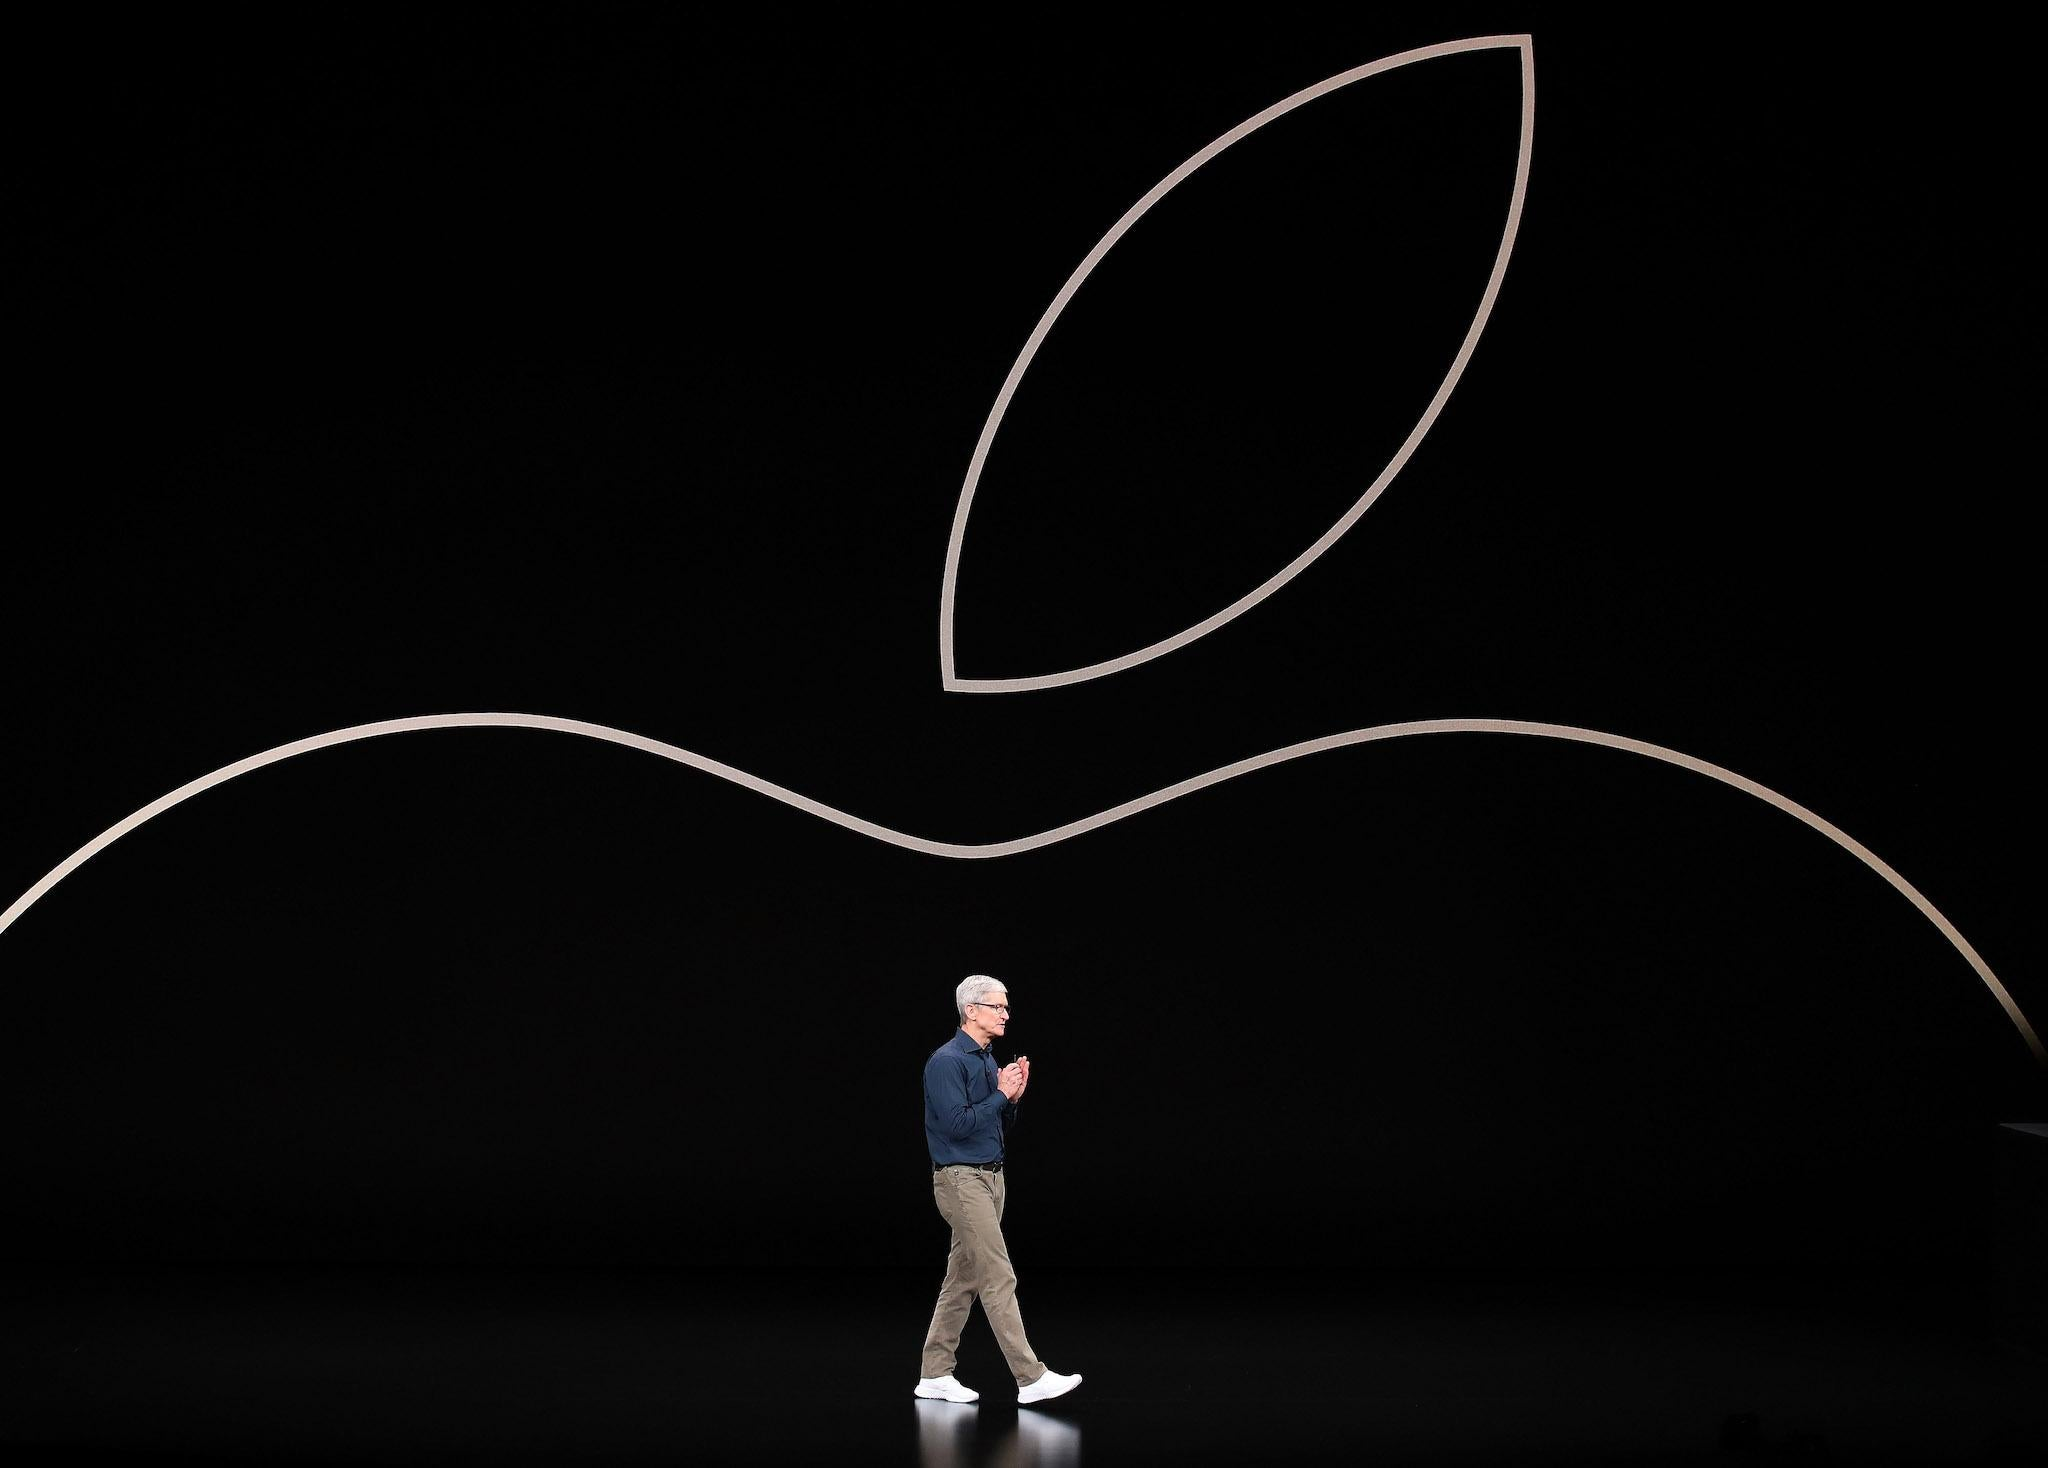 Apple March event confirmed, with company expected to release new streaming service and News subscriptions